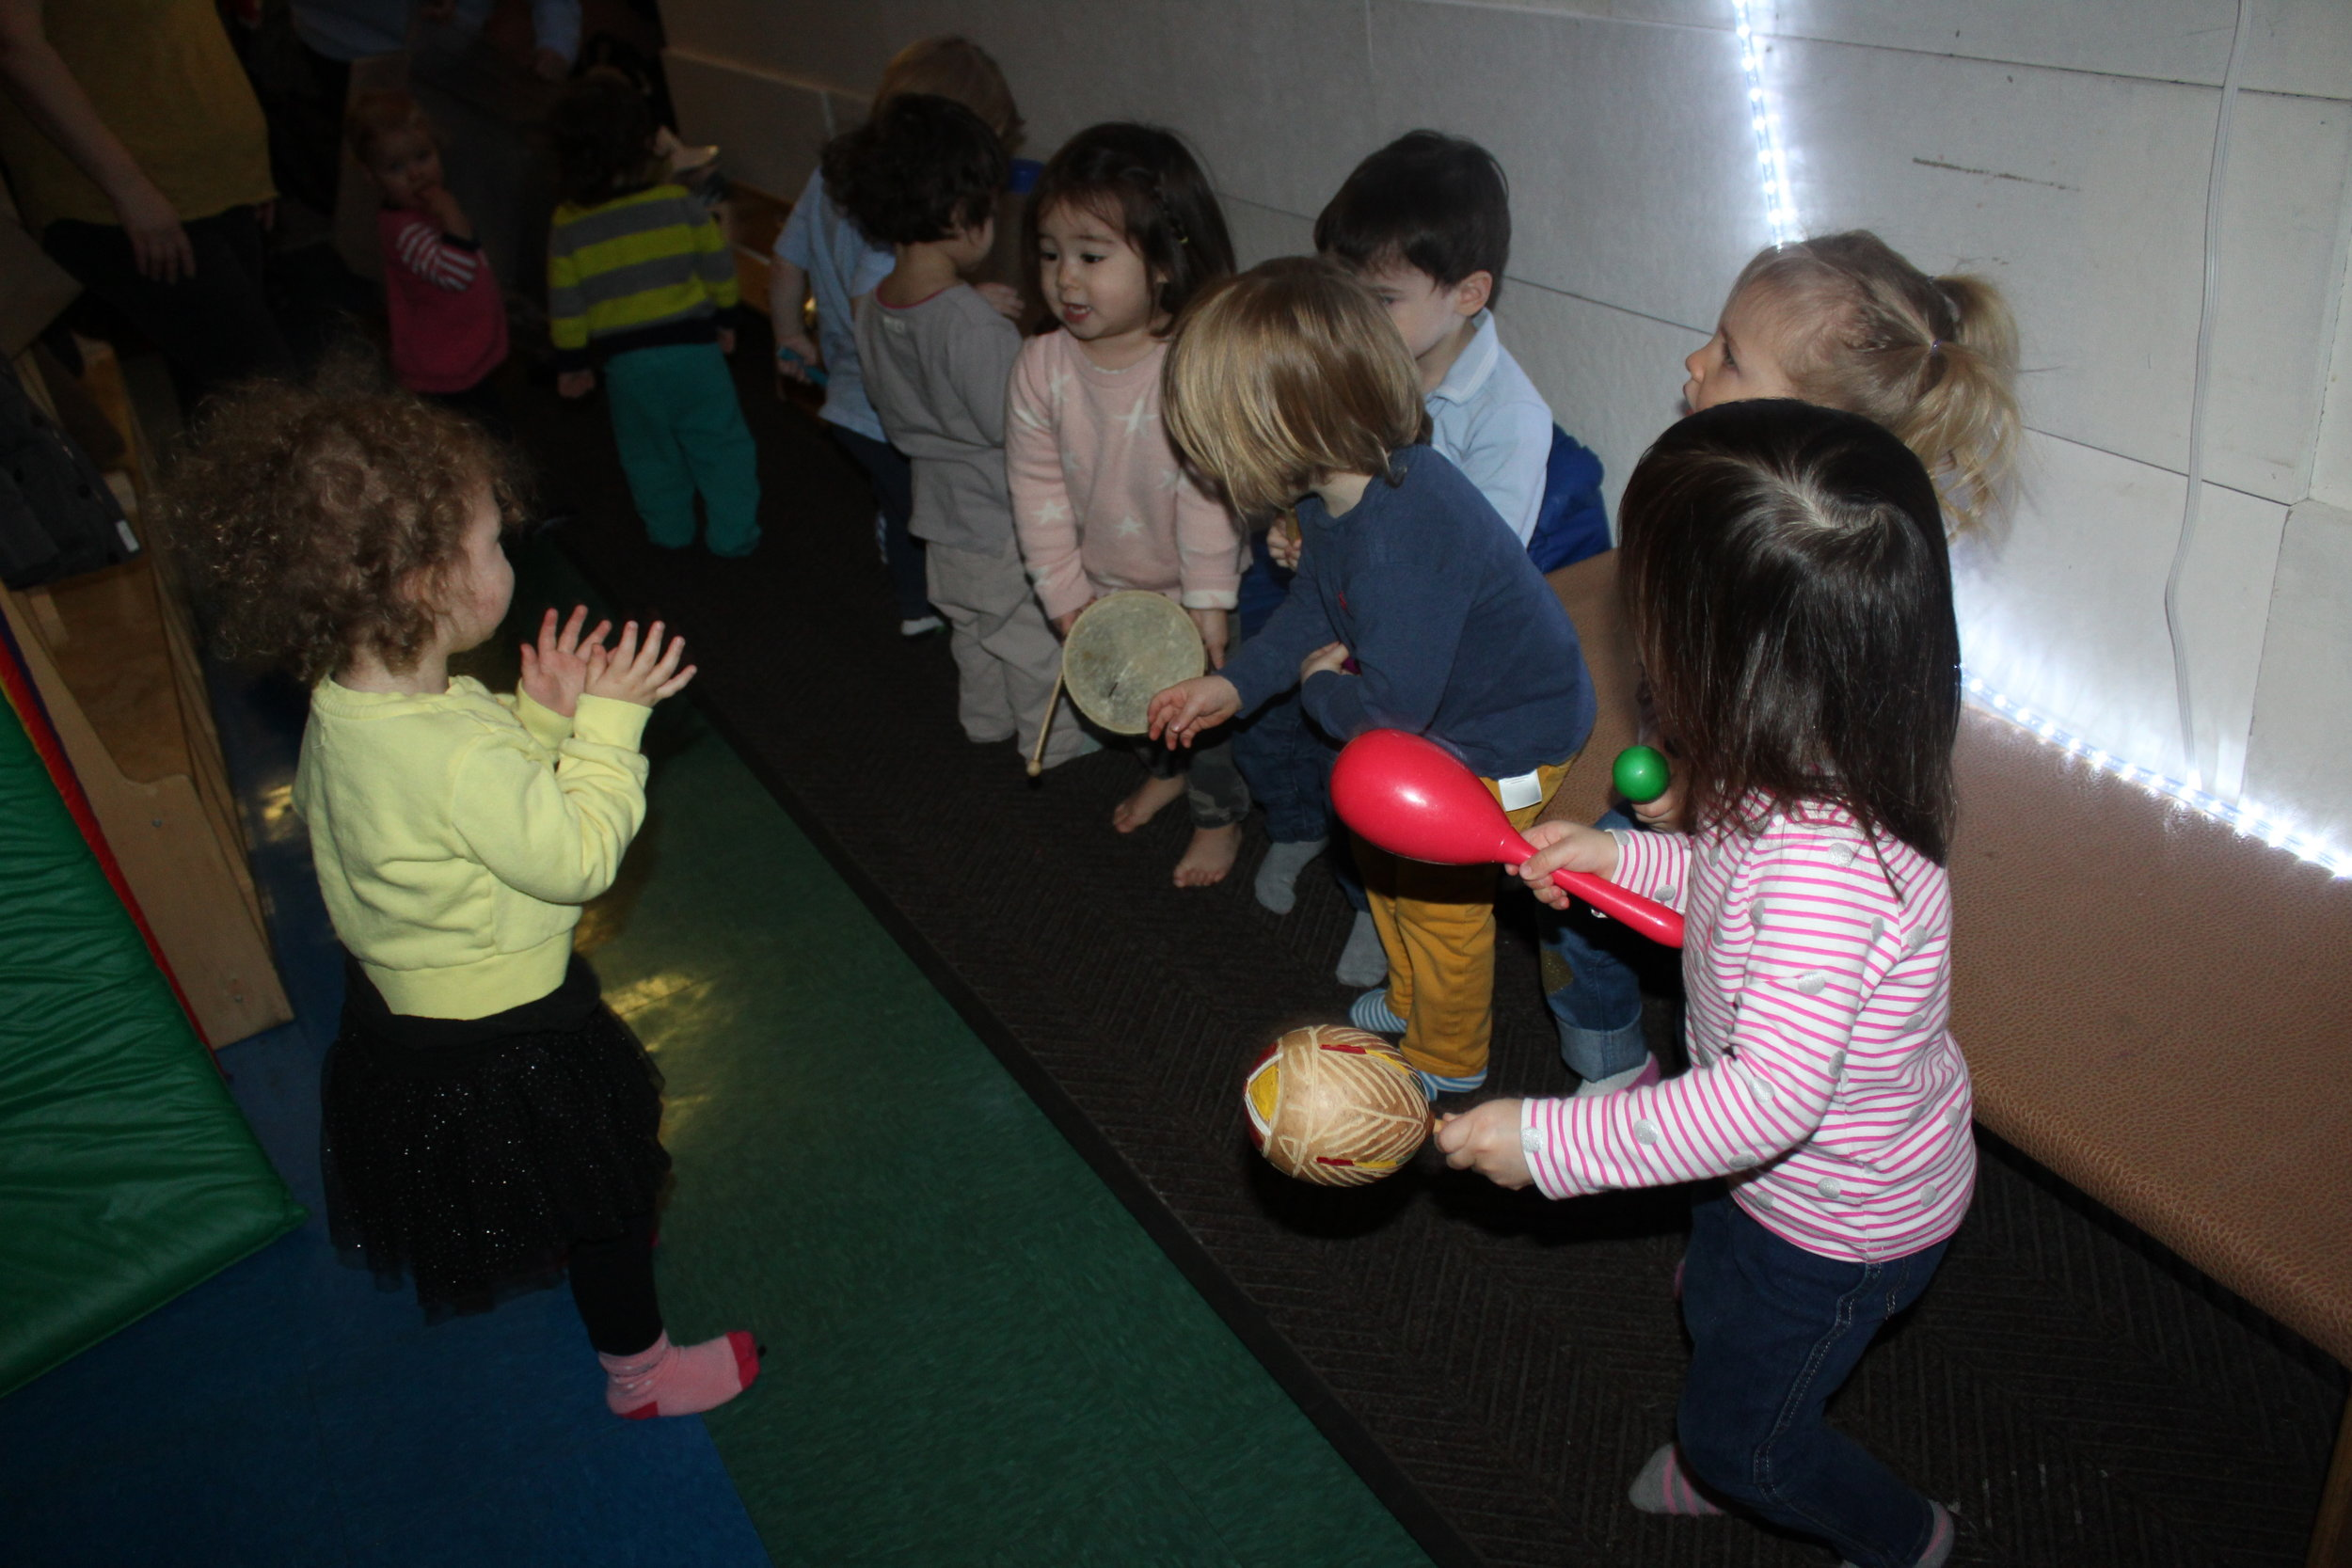 """Part of our curriculum is to provide music.The words and instruments are the special elements that make the music come alive. Children smile,jump,clap, and sway to the music they hear.These experiences promote the development of listening and language skills, motor skills, and creativity.  We visit the """"Music Wall"""" and the children explored and manipulated different instruments in the basket and the guitars displaying on the wall. As they played an instrument they sang ABC, Mr. Sun, and Twinkle Little Star to name a few.Music and movement contribute to children's overall development.Listening to and making music helps children's developing brain.As children learn words to songs, it makes them feel proud and able to participate in singing."""